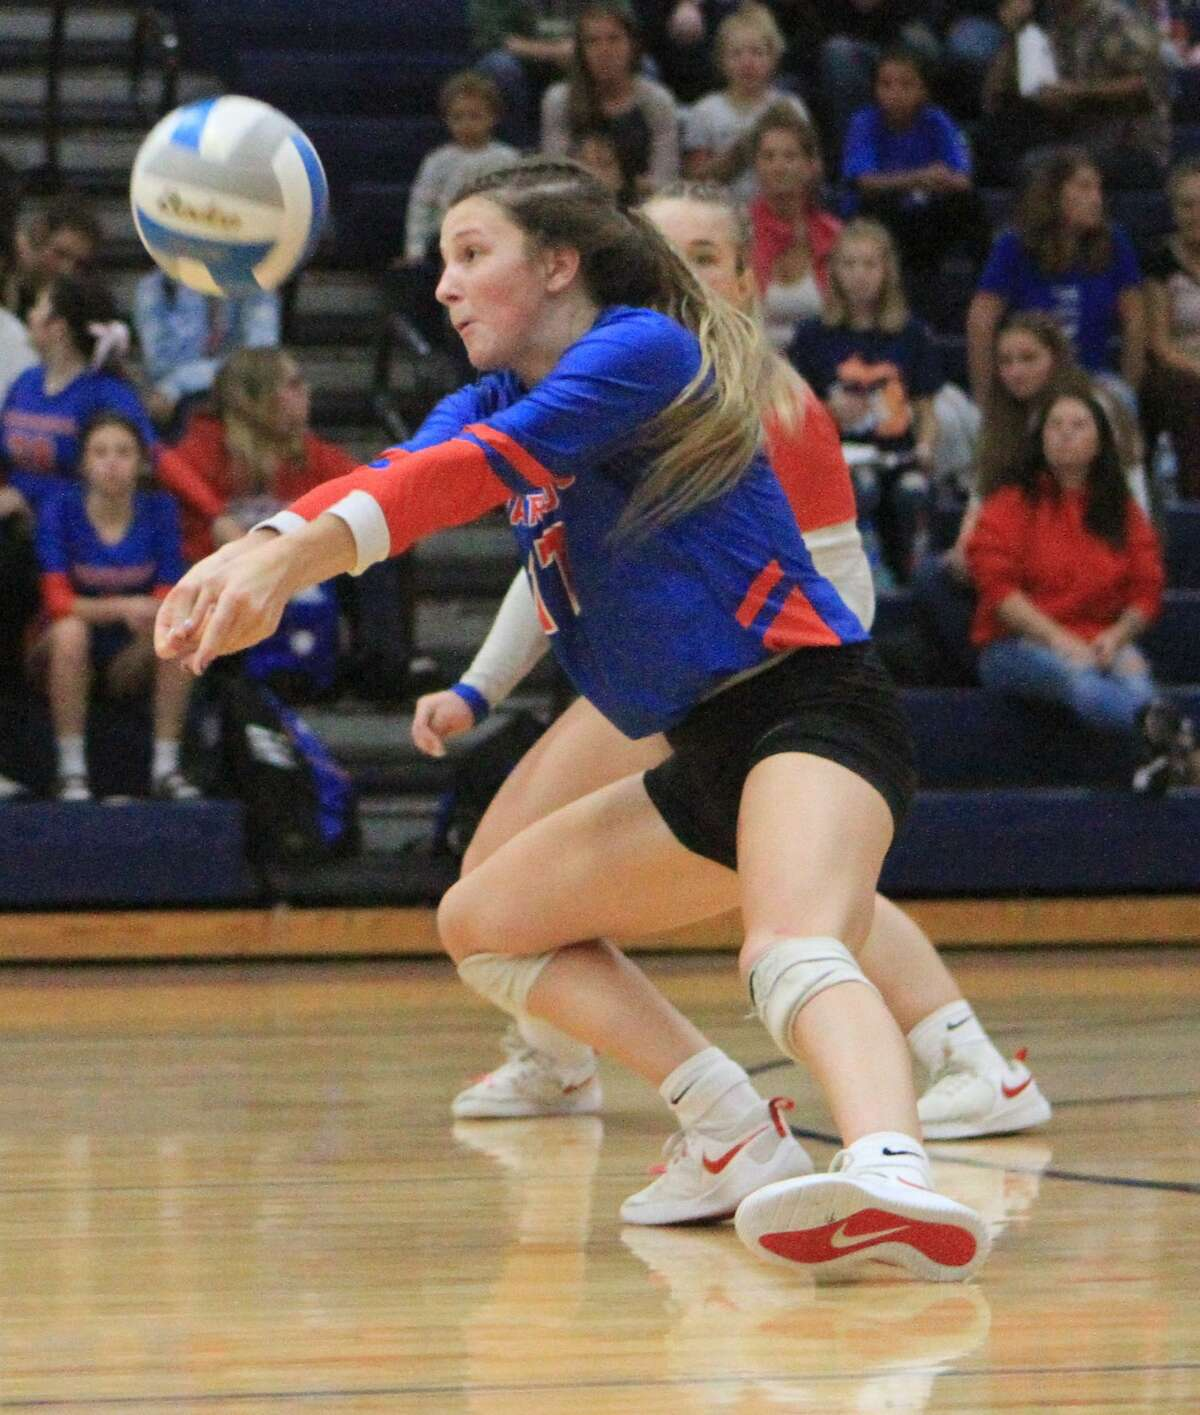 The Chippewa Hills volleyball team fell to Fremont in five sets on Tuesday night.